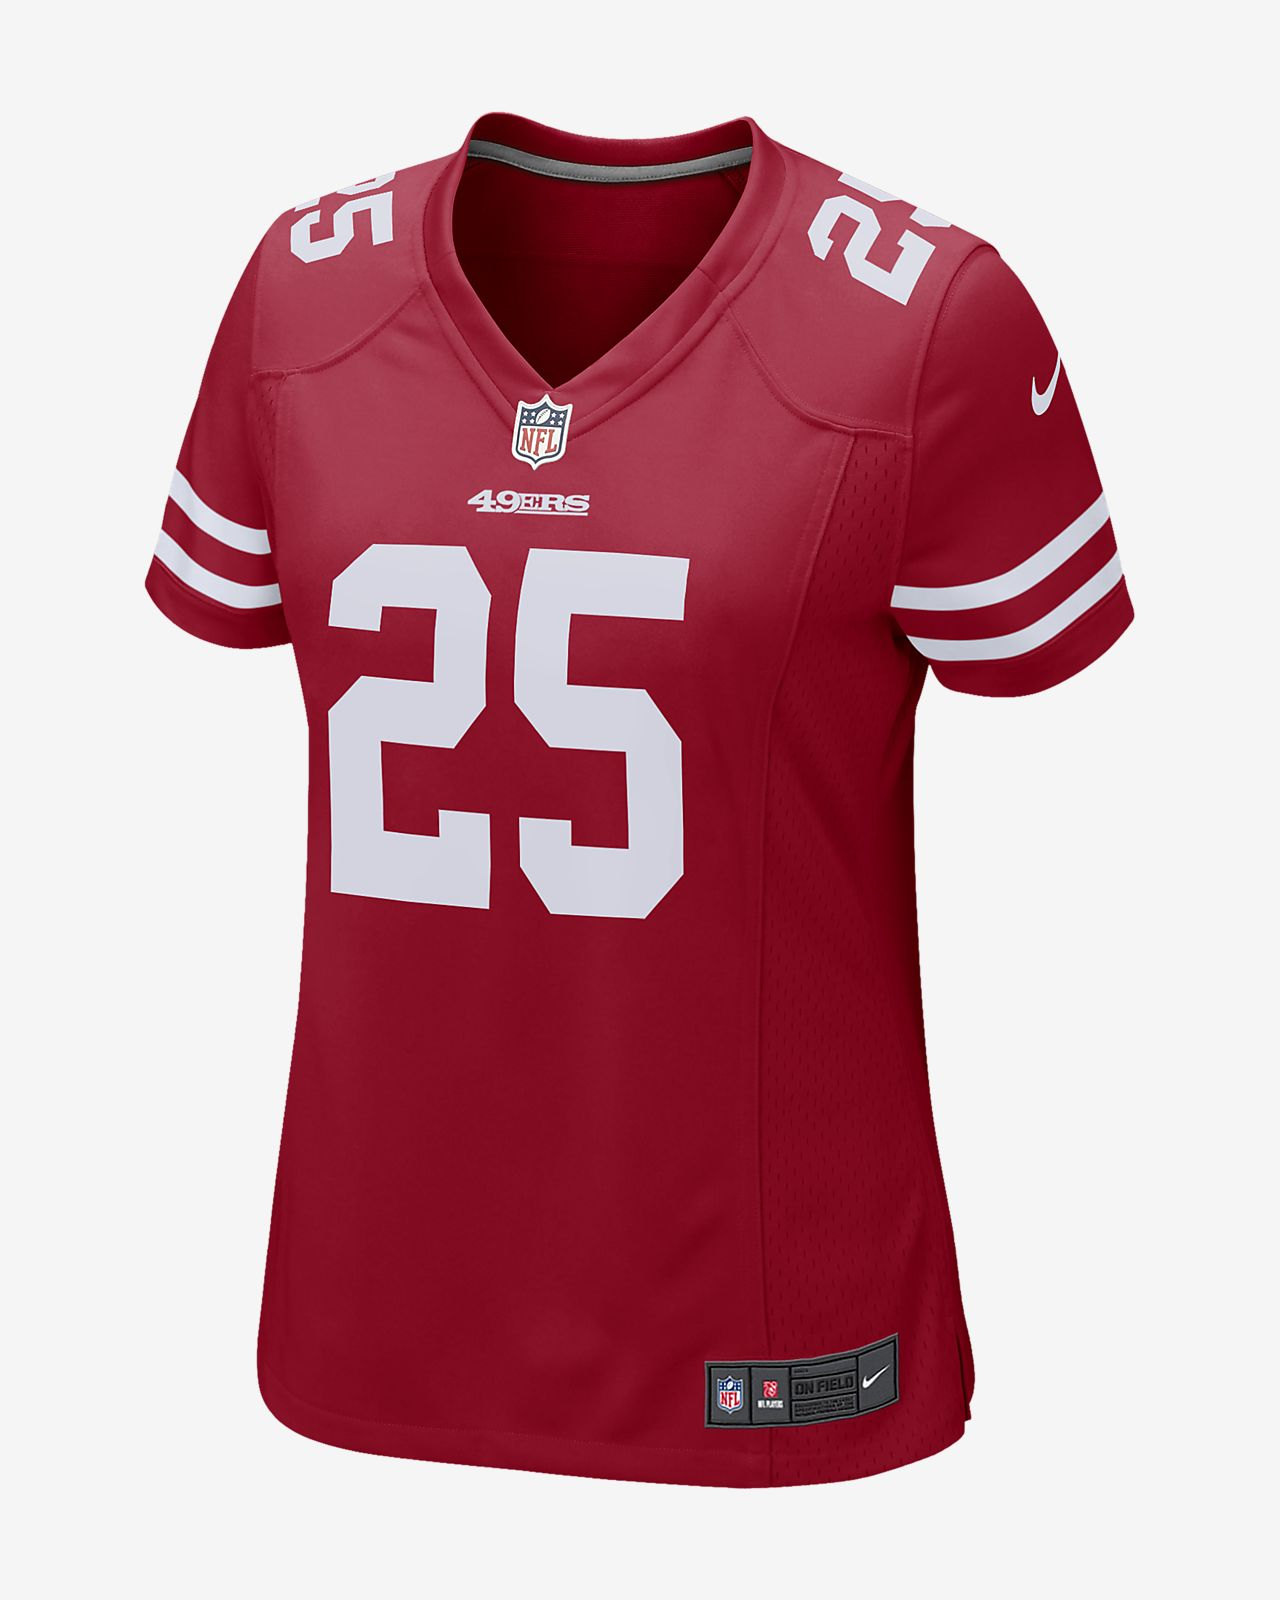 ec463fa70 NFL San Francisco 49ers Game (Richard Sherman) Women s Football ...